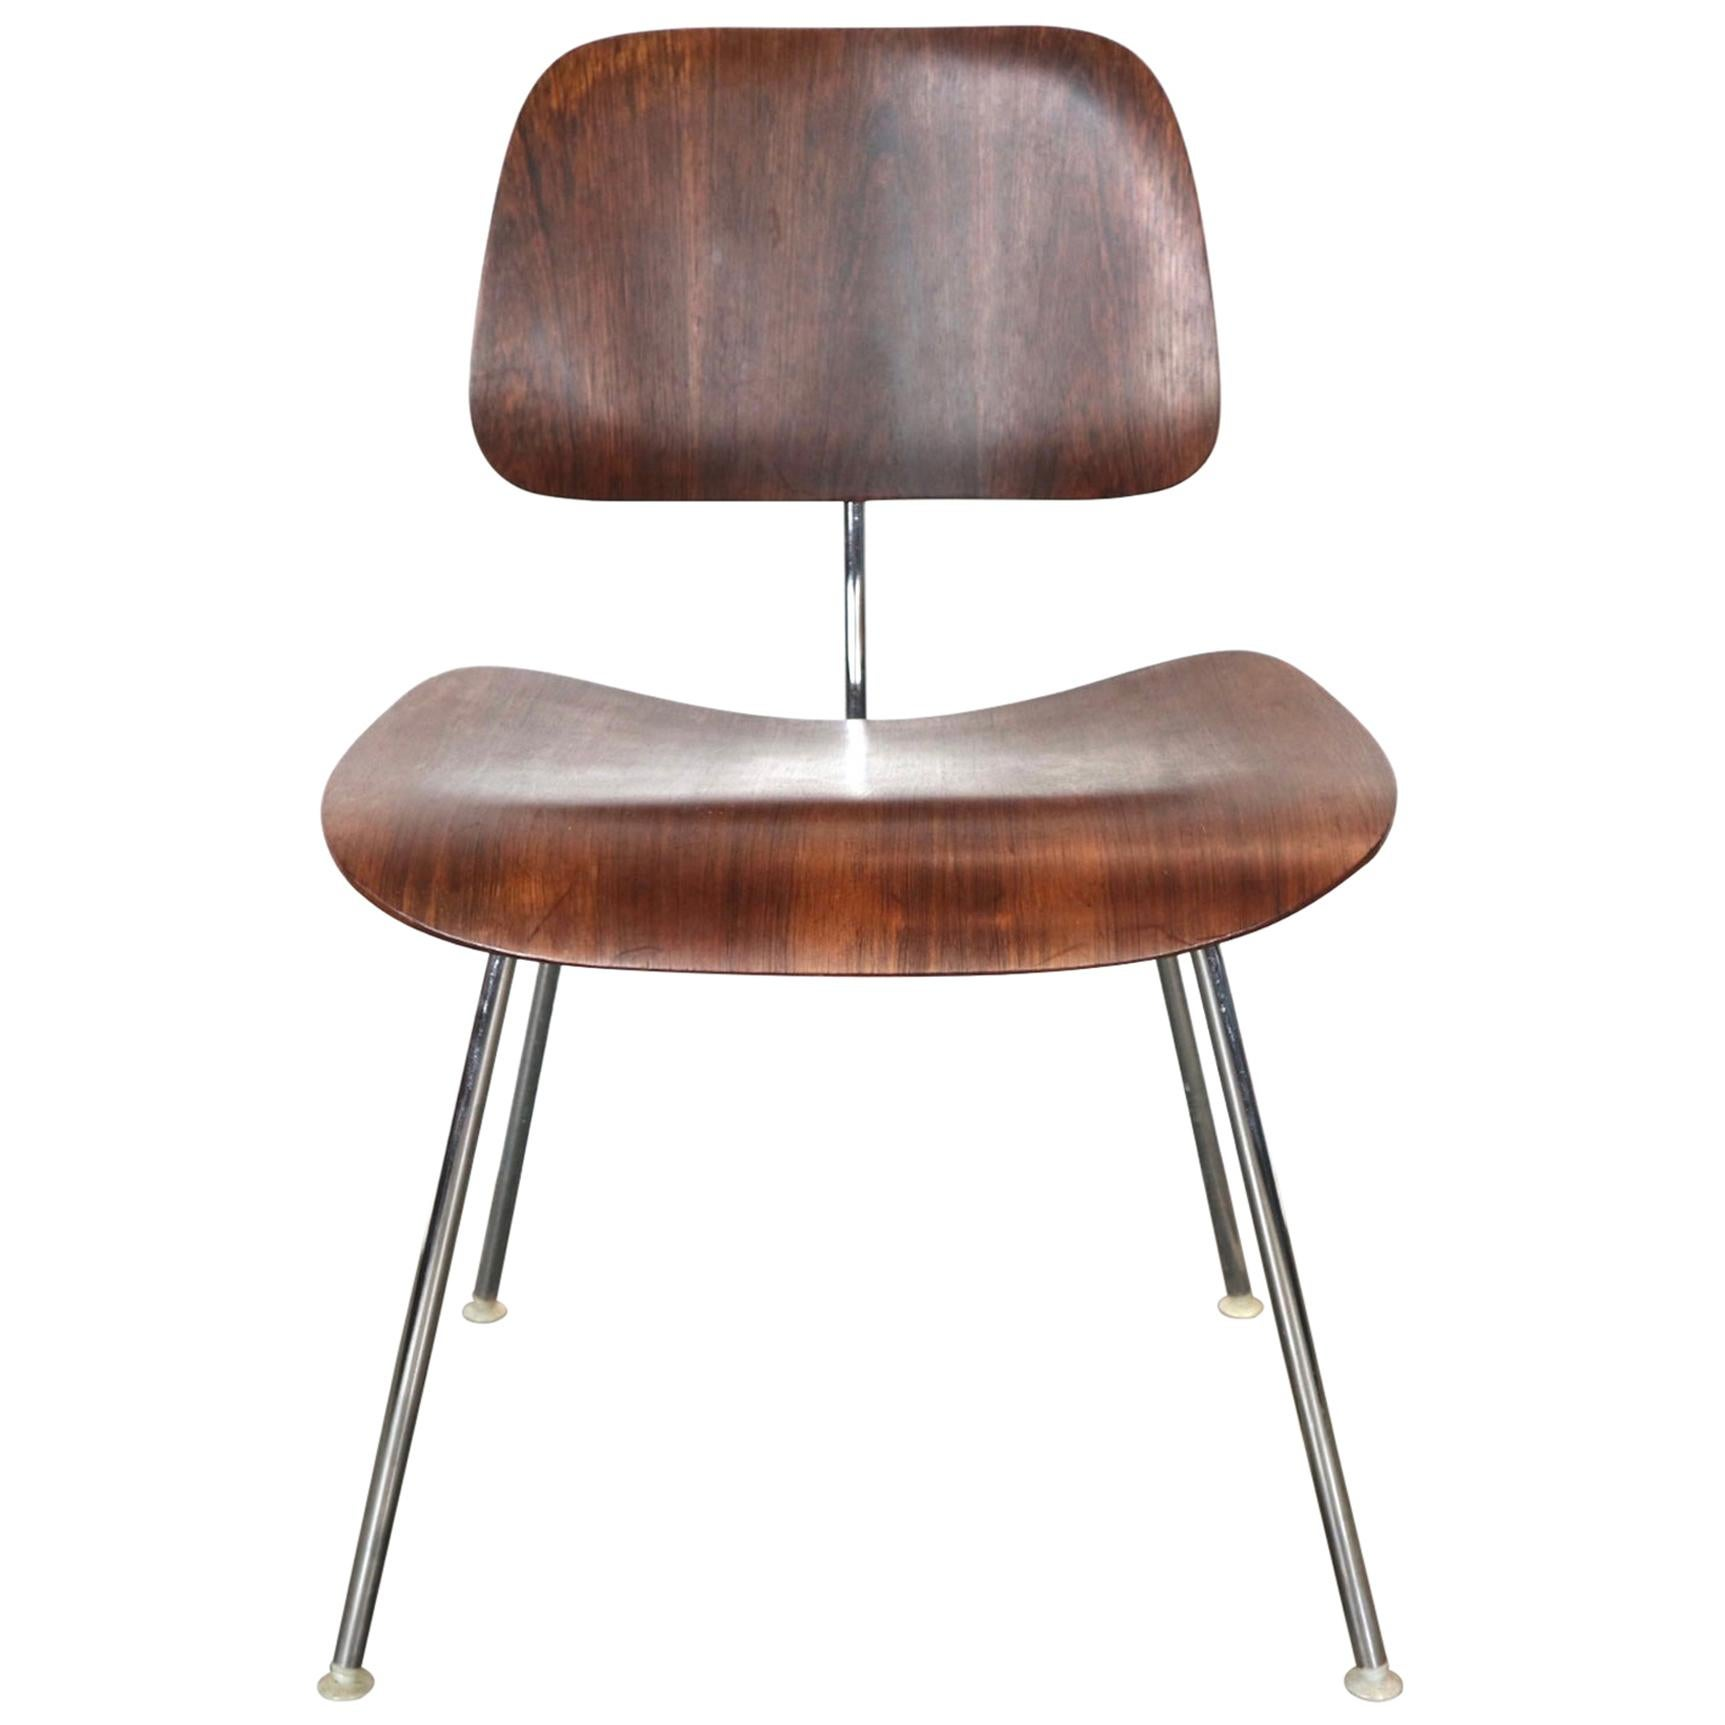 Exquisite and Rare Rosewood Herman Miller Eames DCM Dining Chair